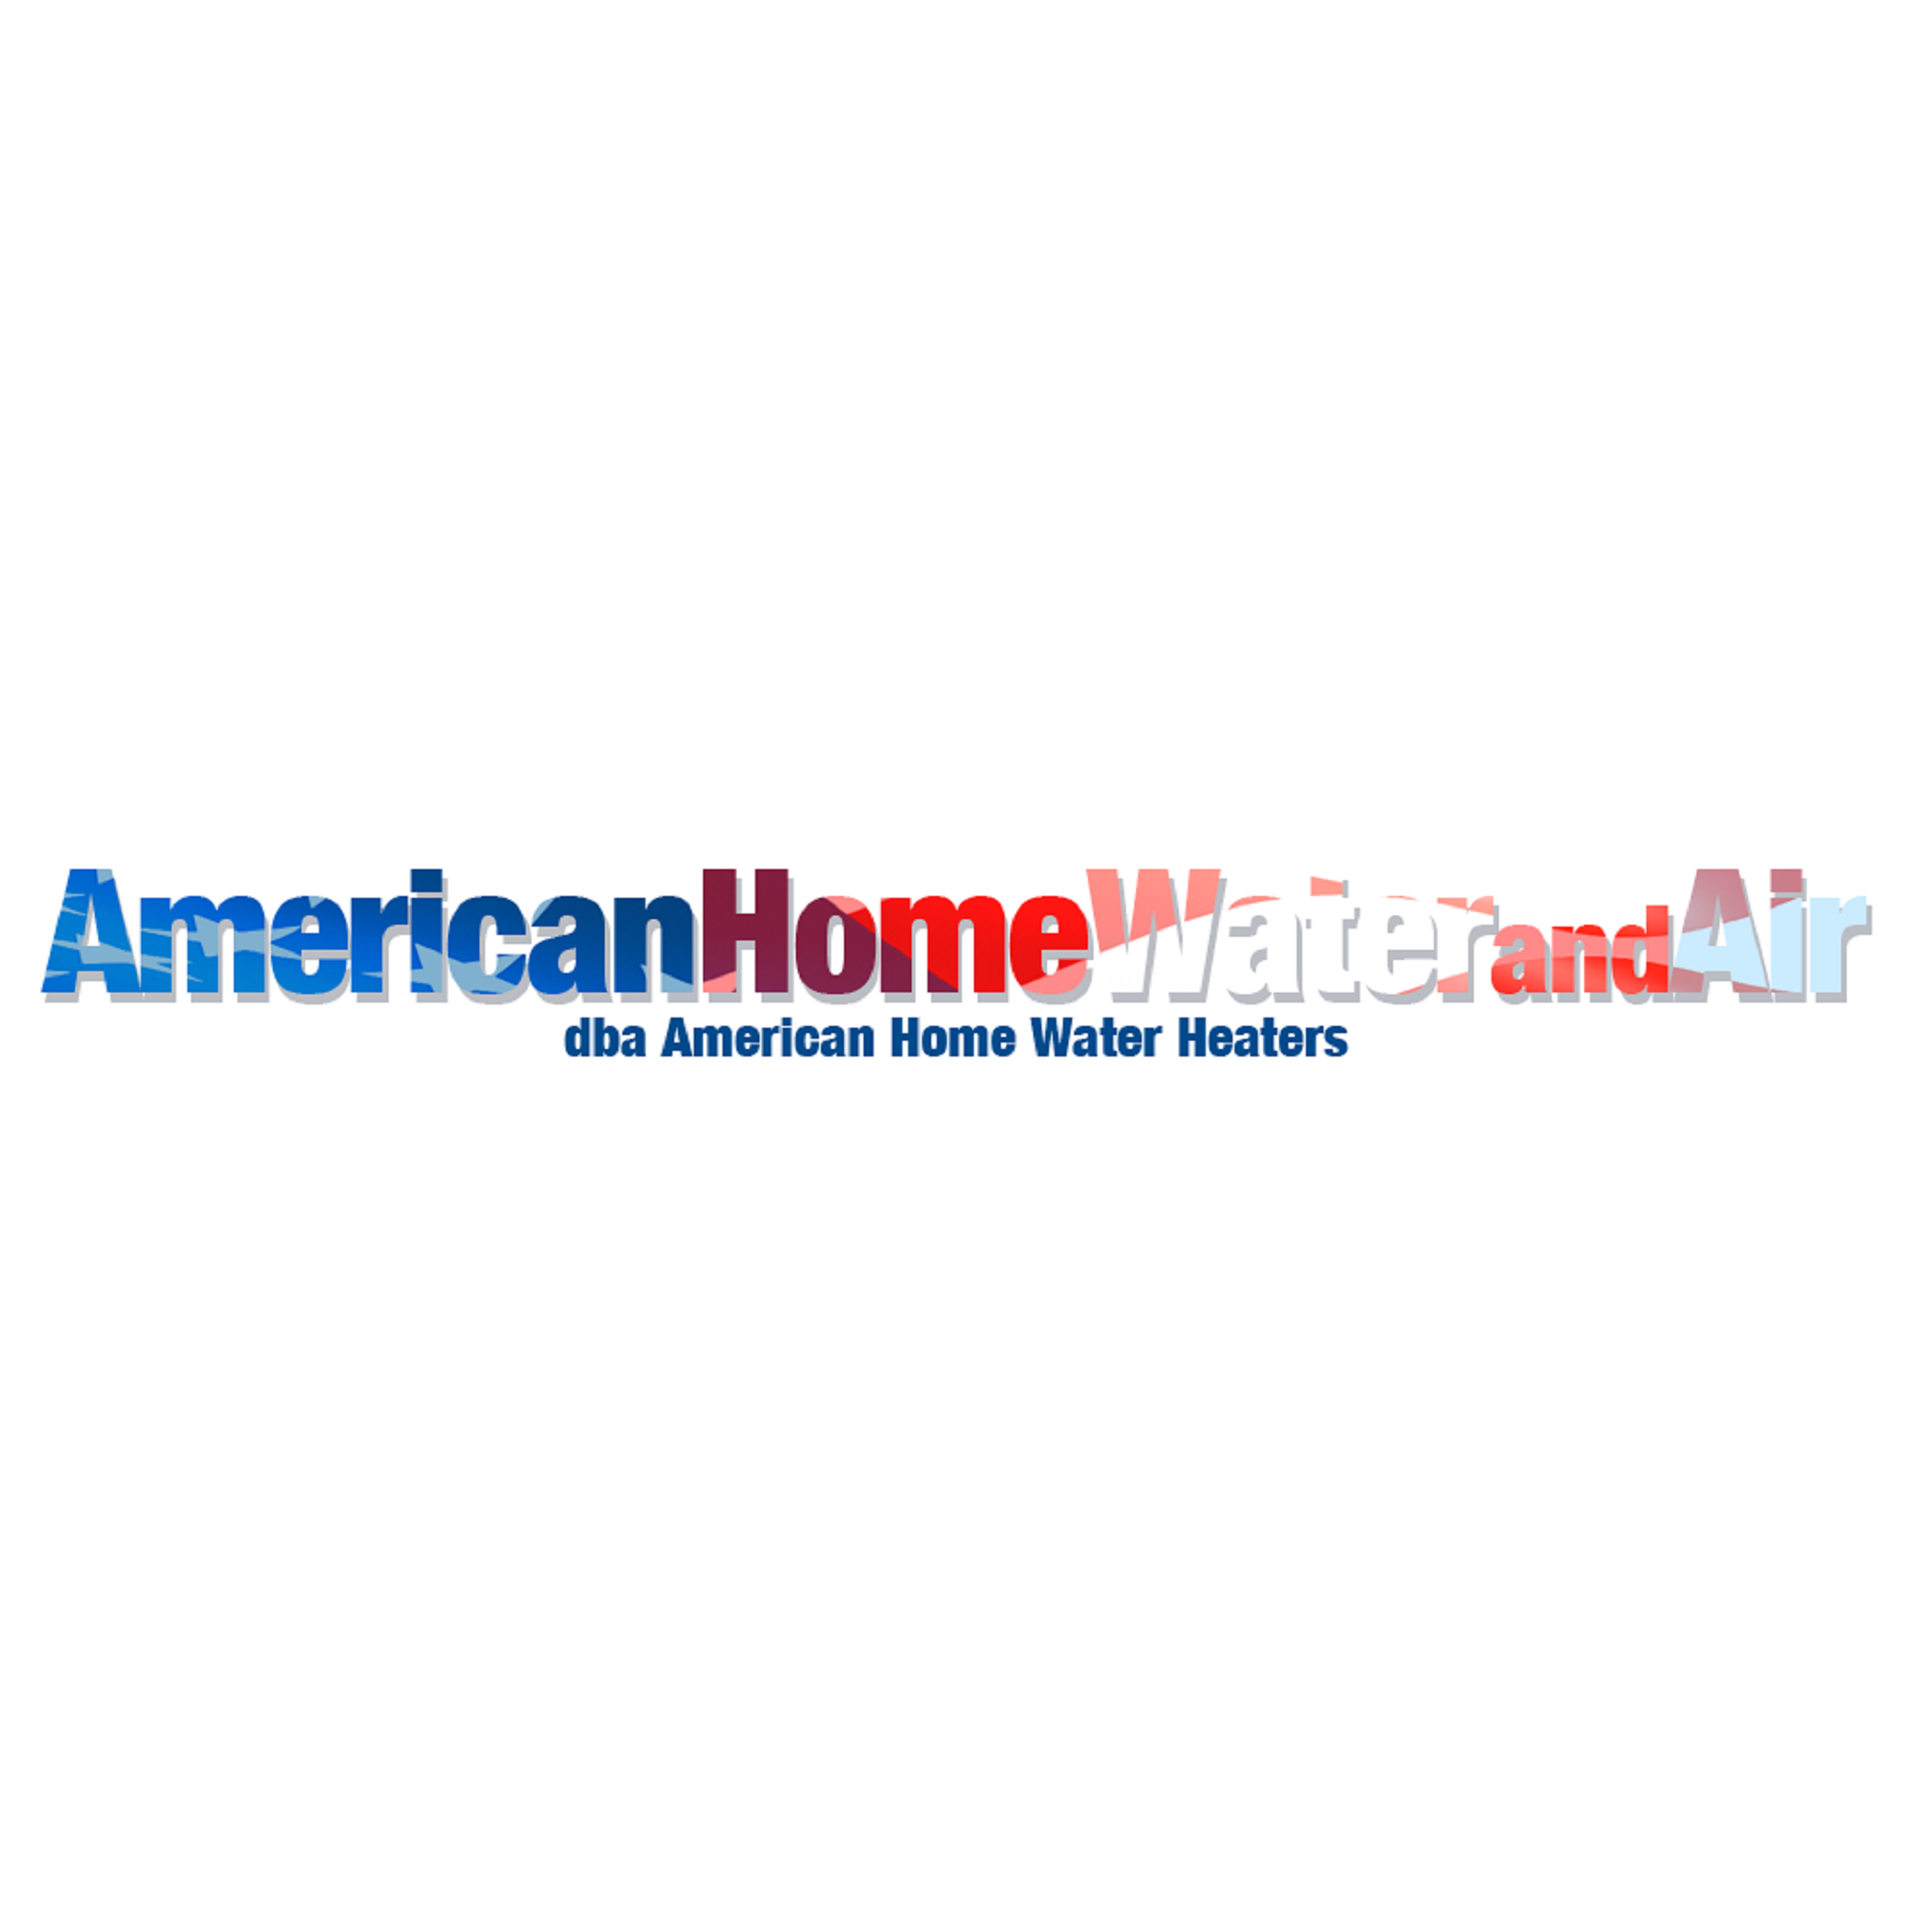 American Home Water & Air image 6